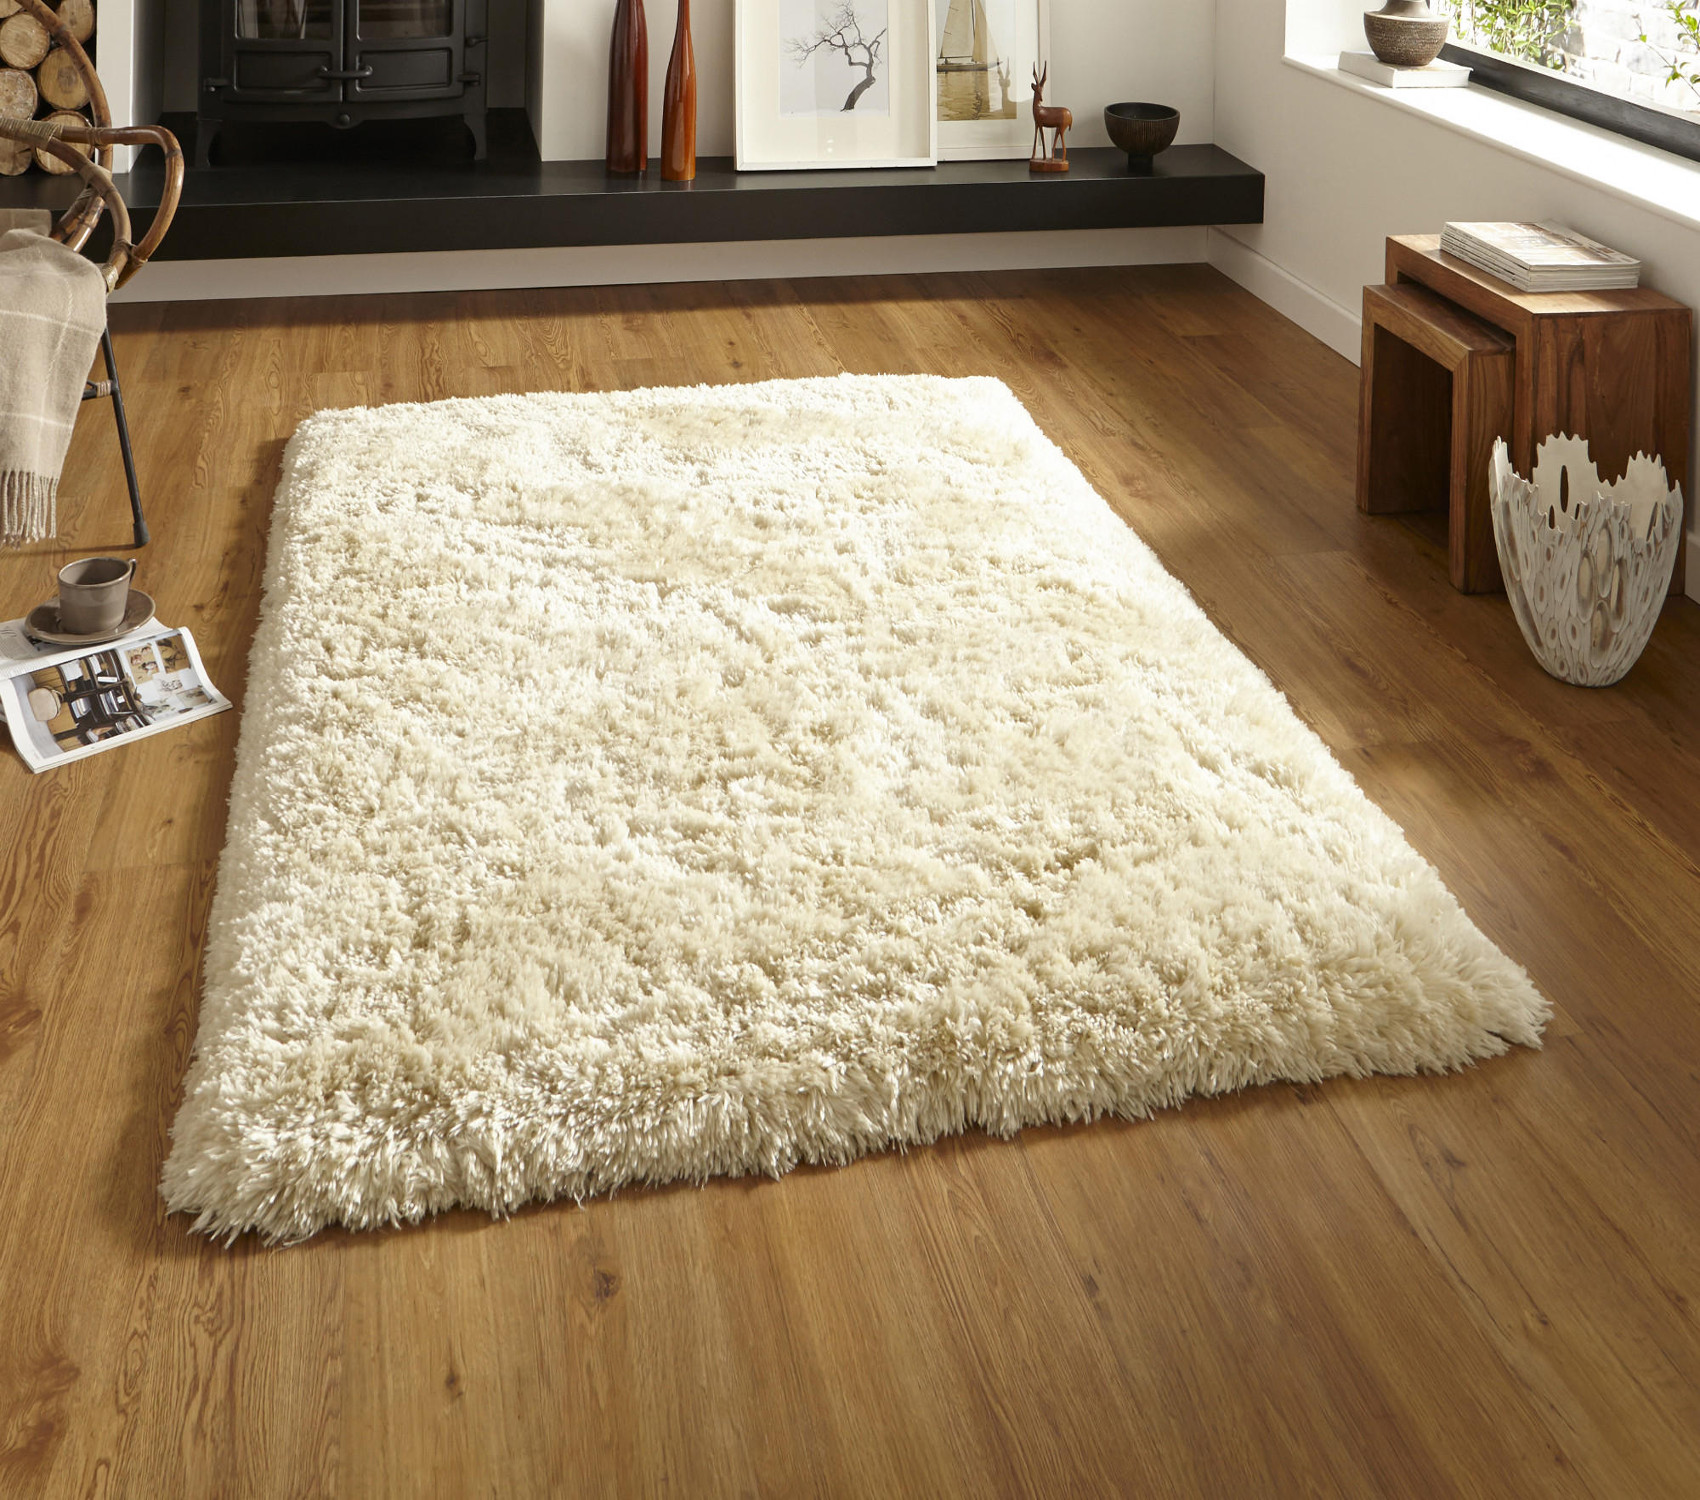 Cream Shag Rugs Home Decor